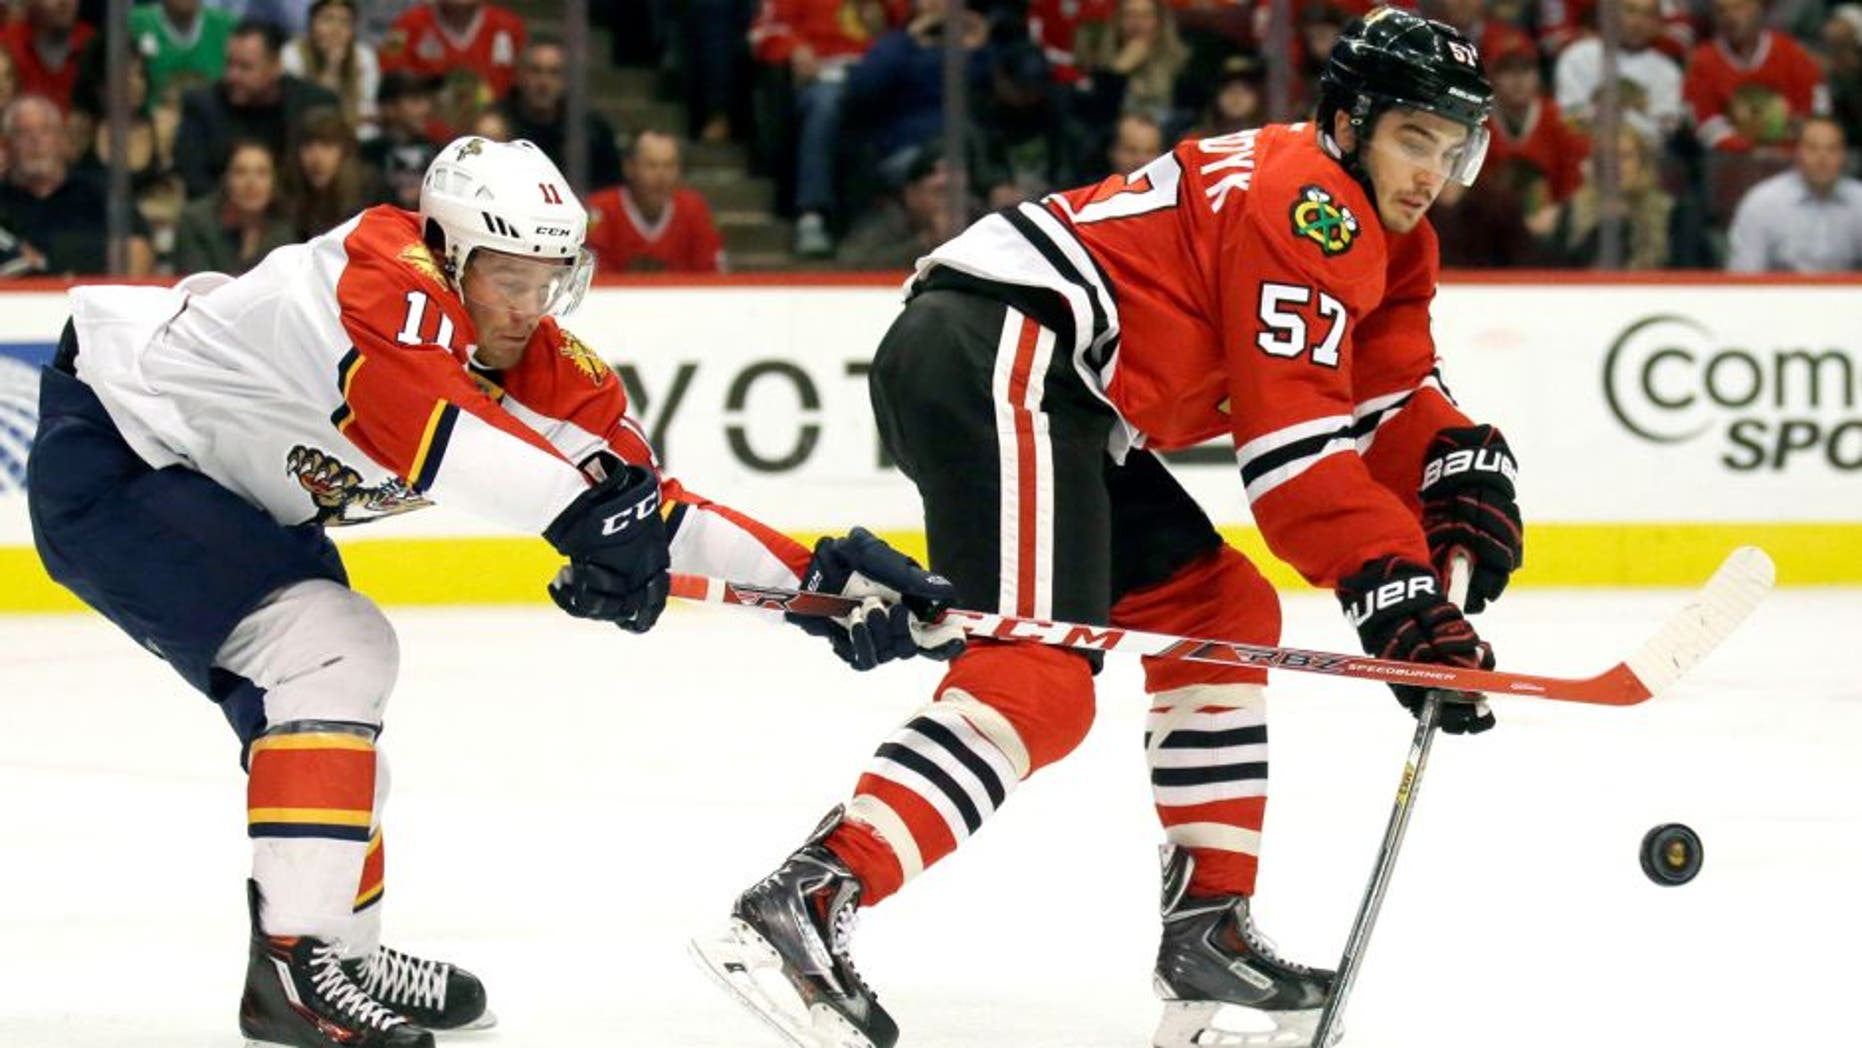 Florida Panthers left wing Jonathan Huberdeau, left, and Chicago Blackhawks defenseman Trevor van Riemsdyk battle for the puck during the first period of an NHL hockey game Thursday, Oct. 22, 2015, in Chicago. (AP Photo/Nam Y. Huh)